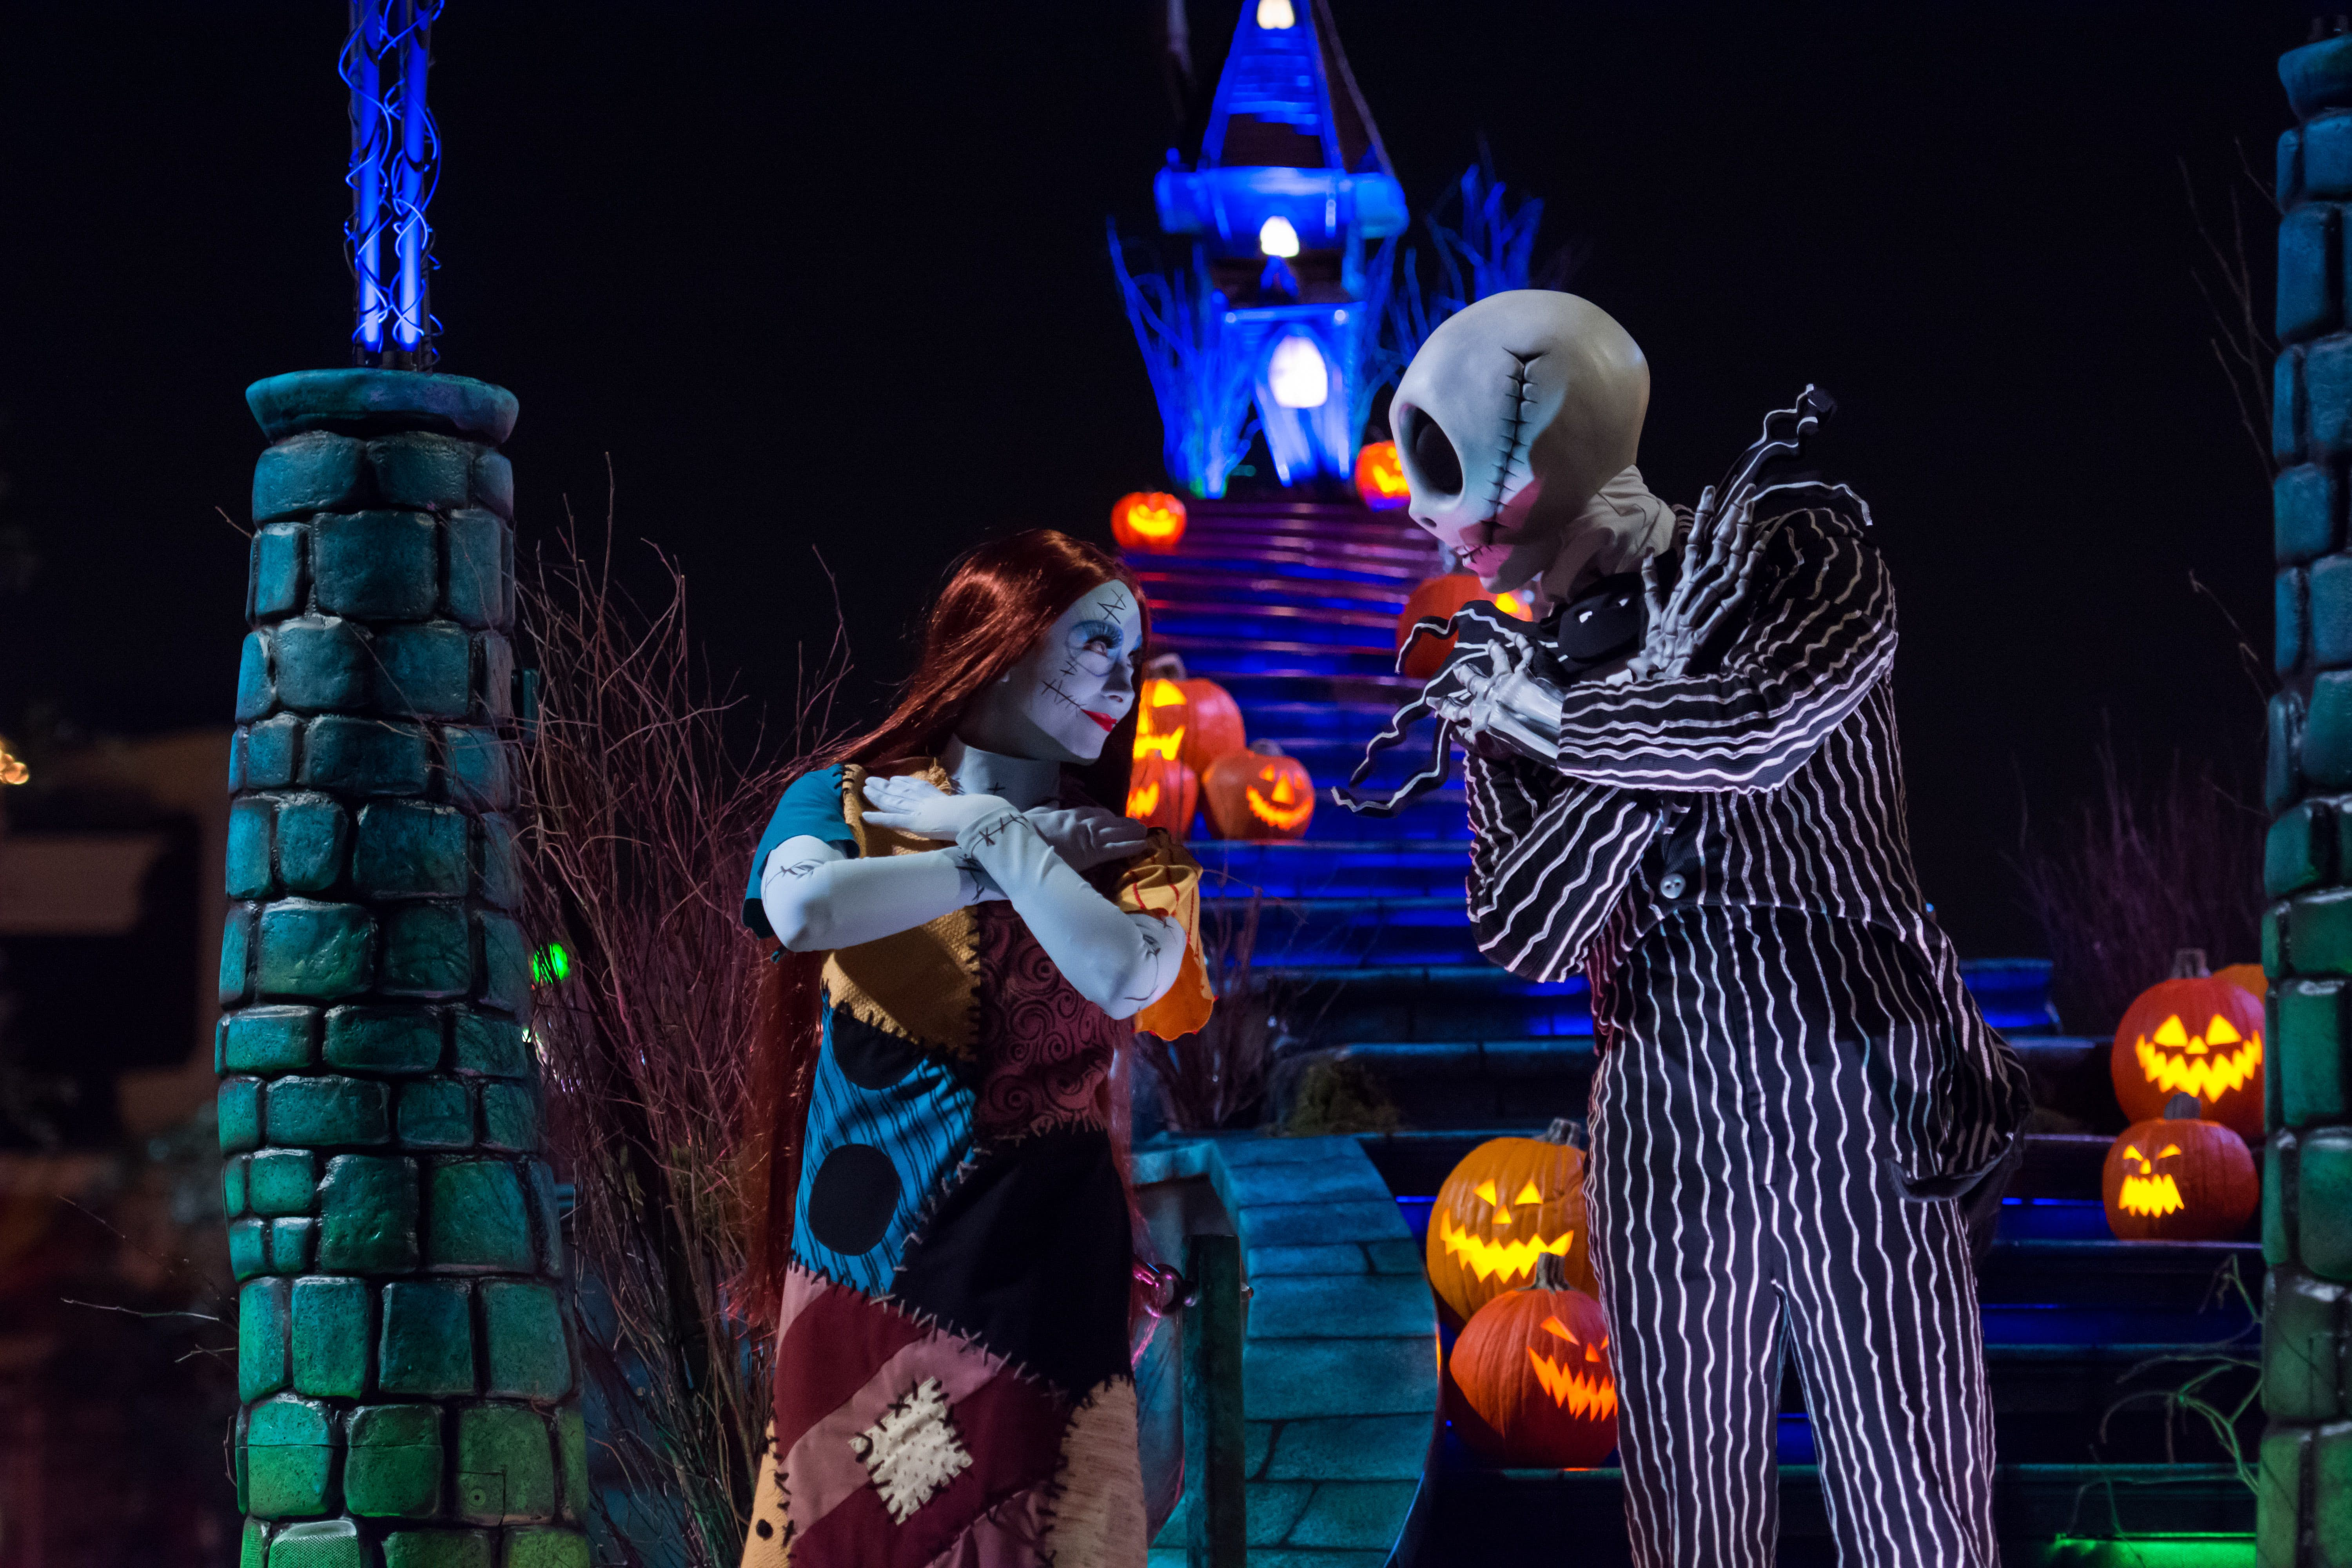 Disneyland is throwing an after,hours Halloween party